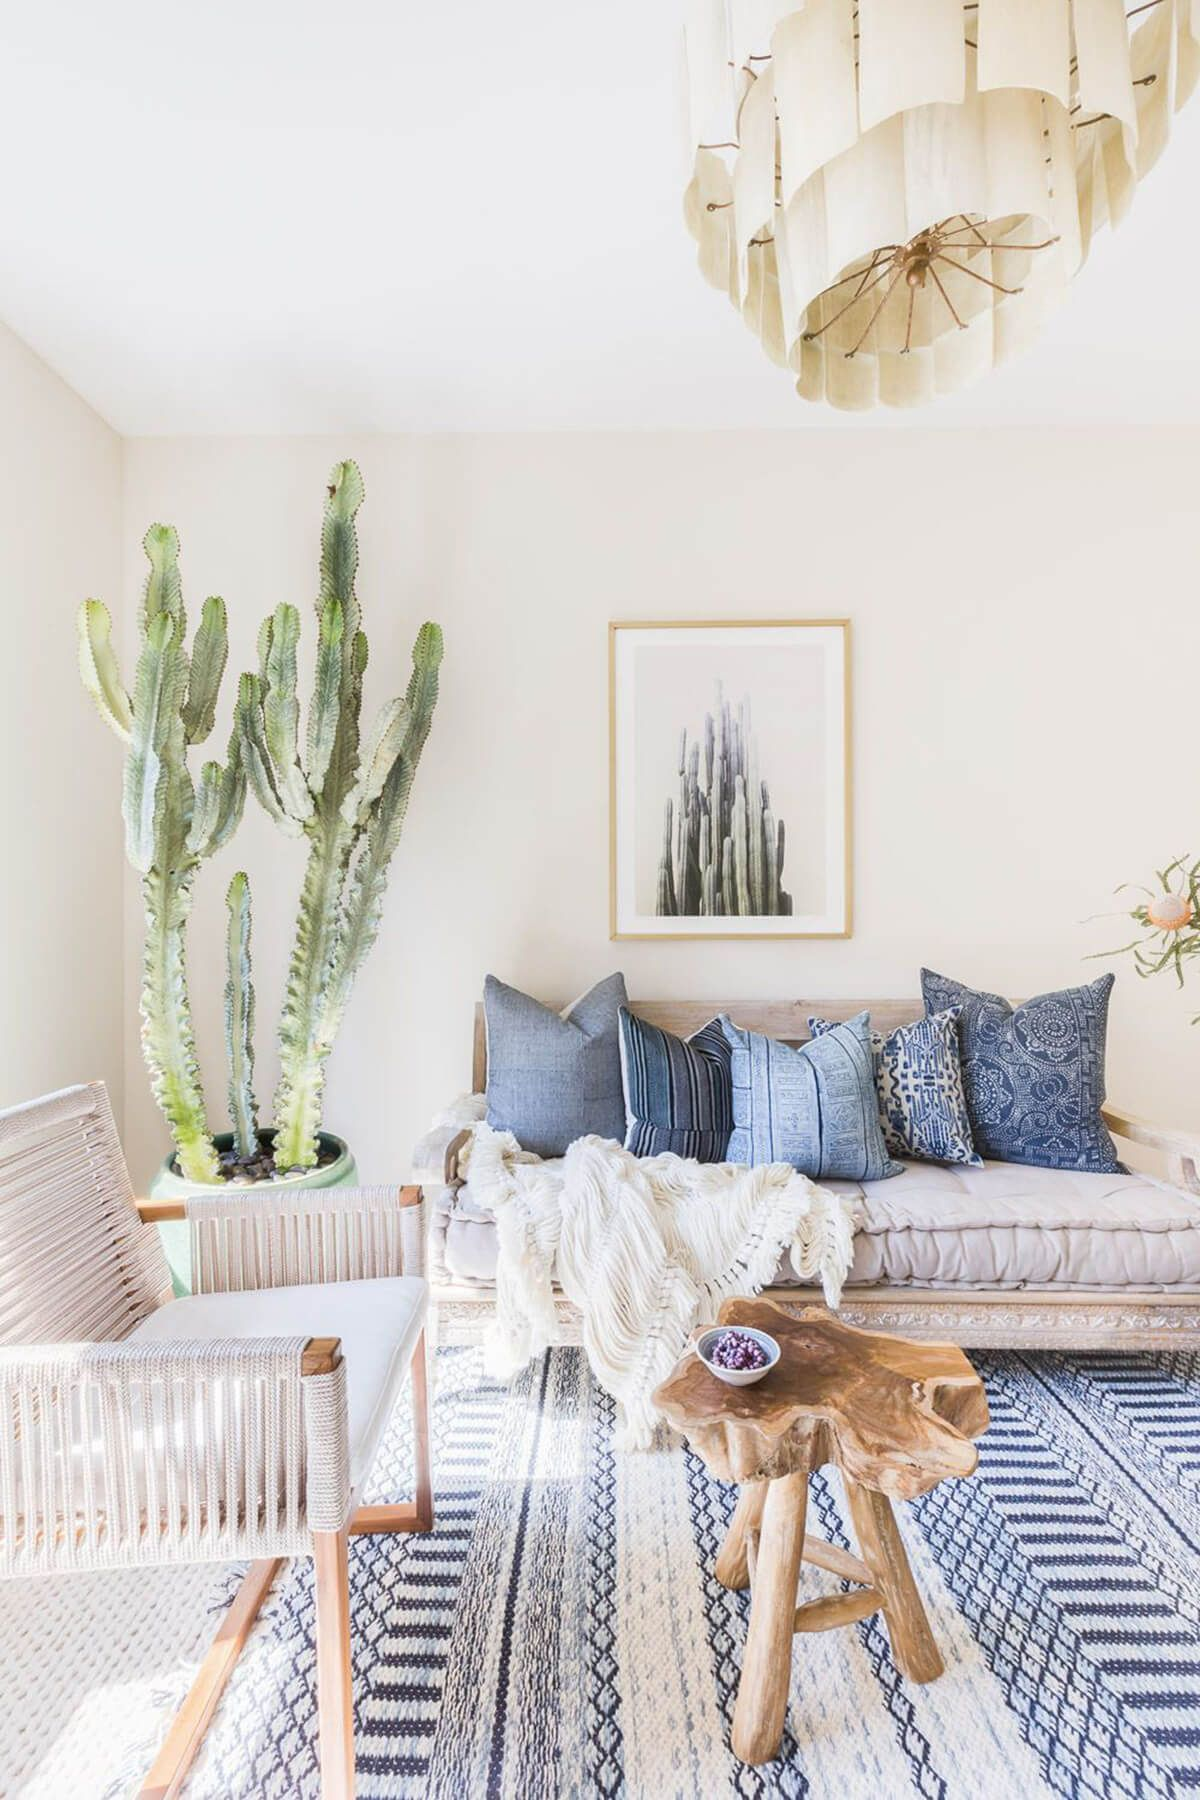 Modern bohemian home decor   Timeless Neutral Home Decor Ideas that are Full of Style and